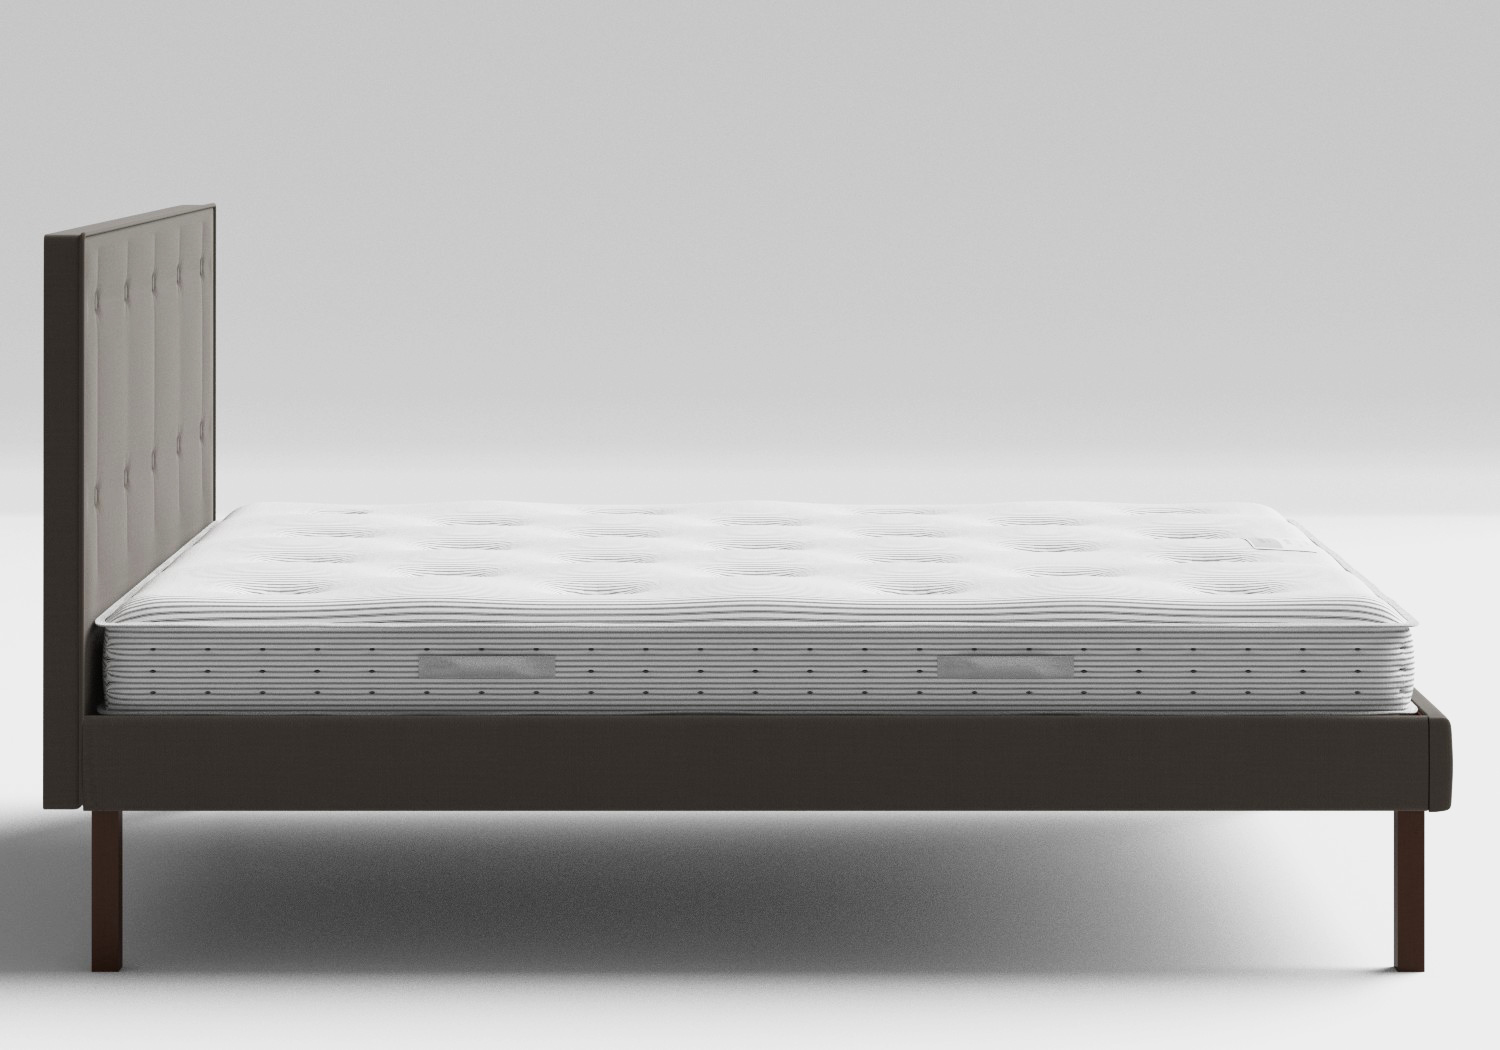 Misaki Upholstered Bed in Grey fabric with buttoning shown with Juno 1 mattress